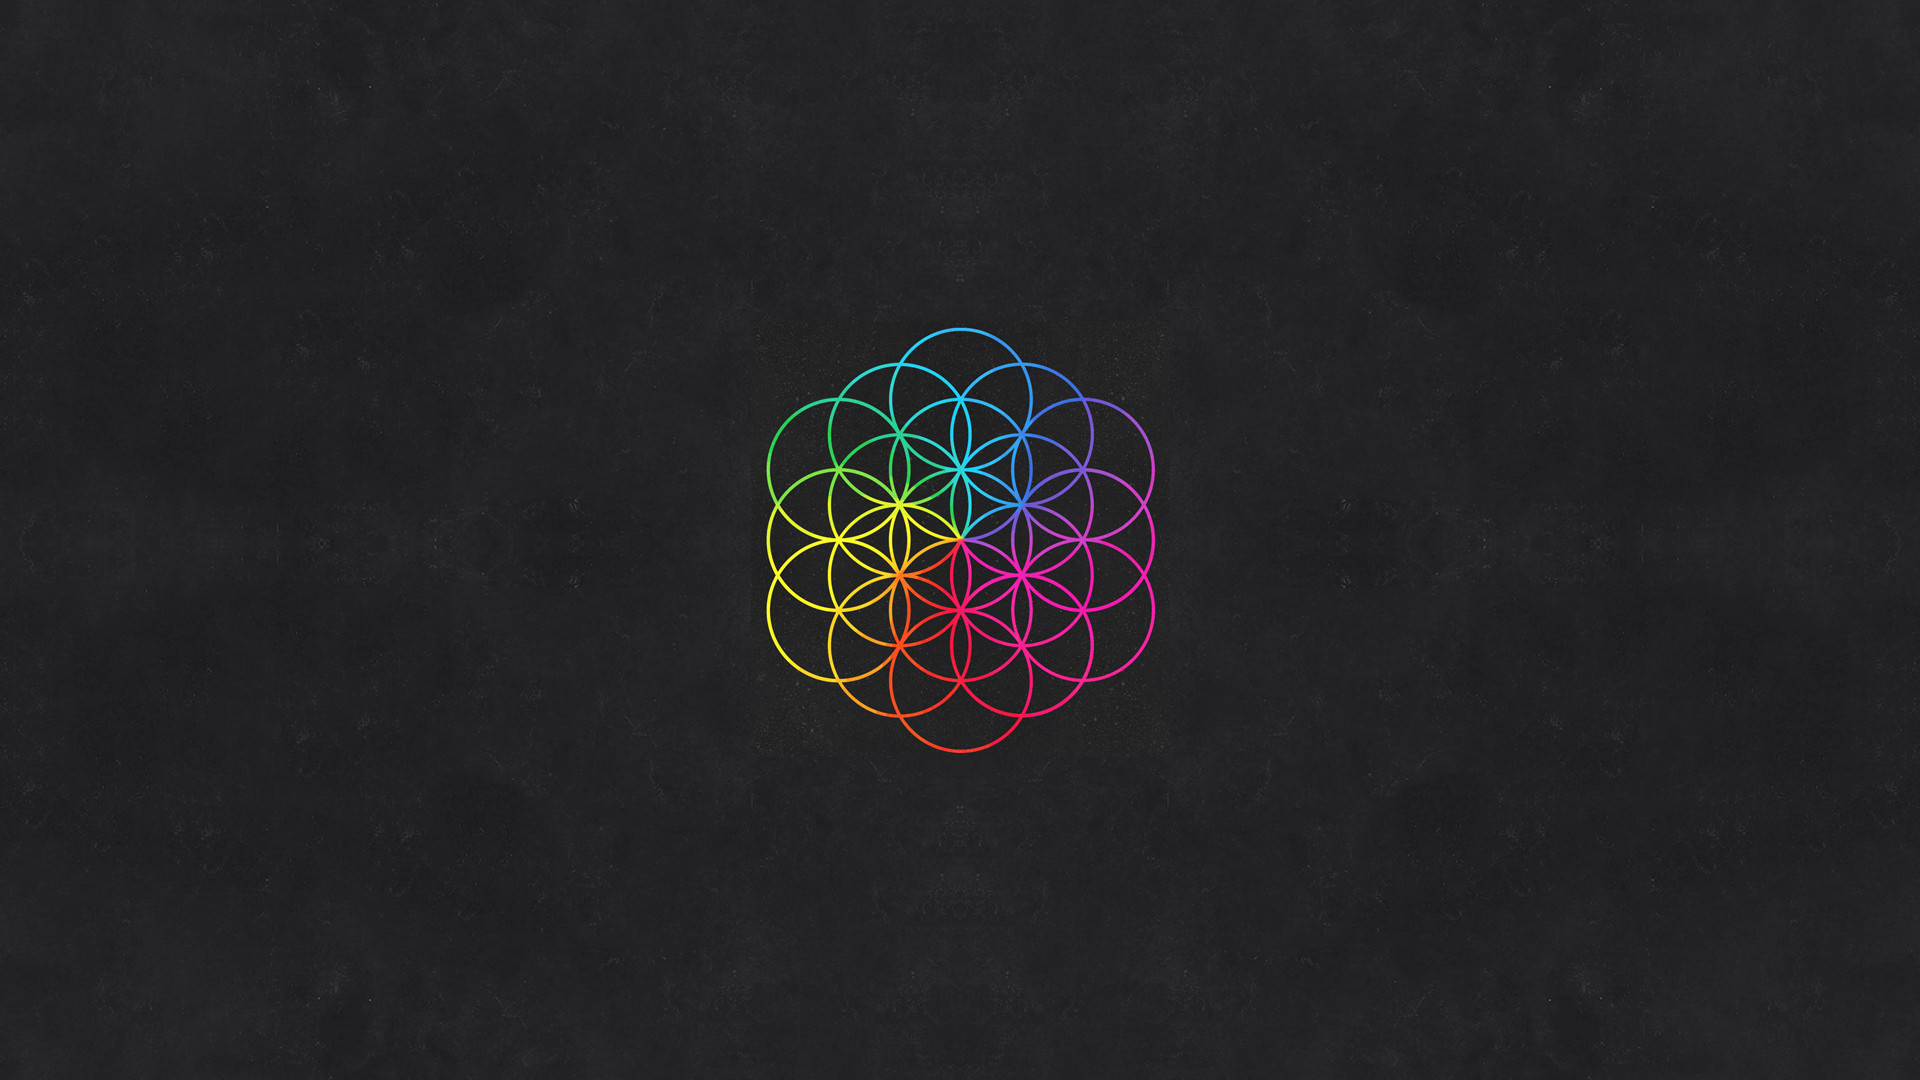 Coldplay Wallpaper Hd 79 Images